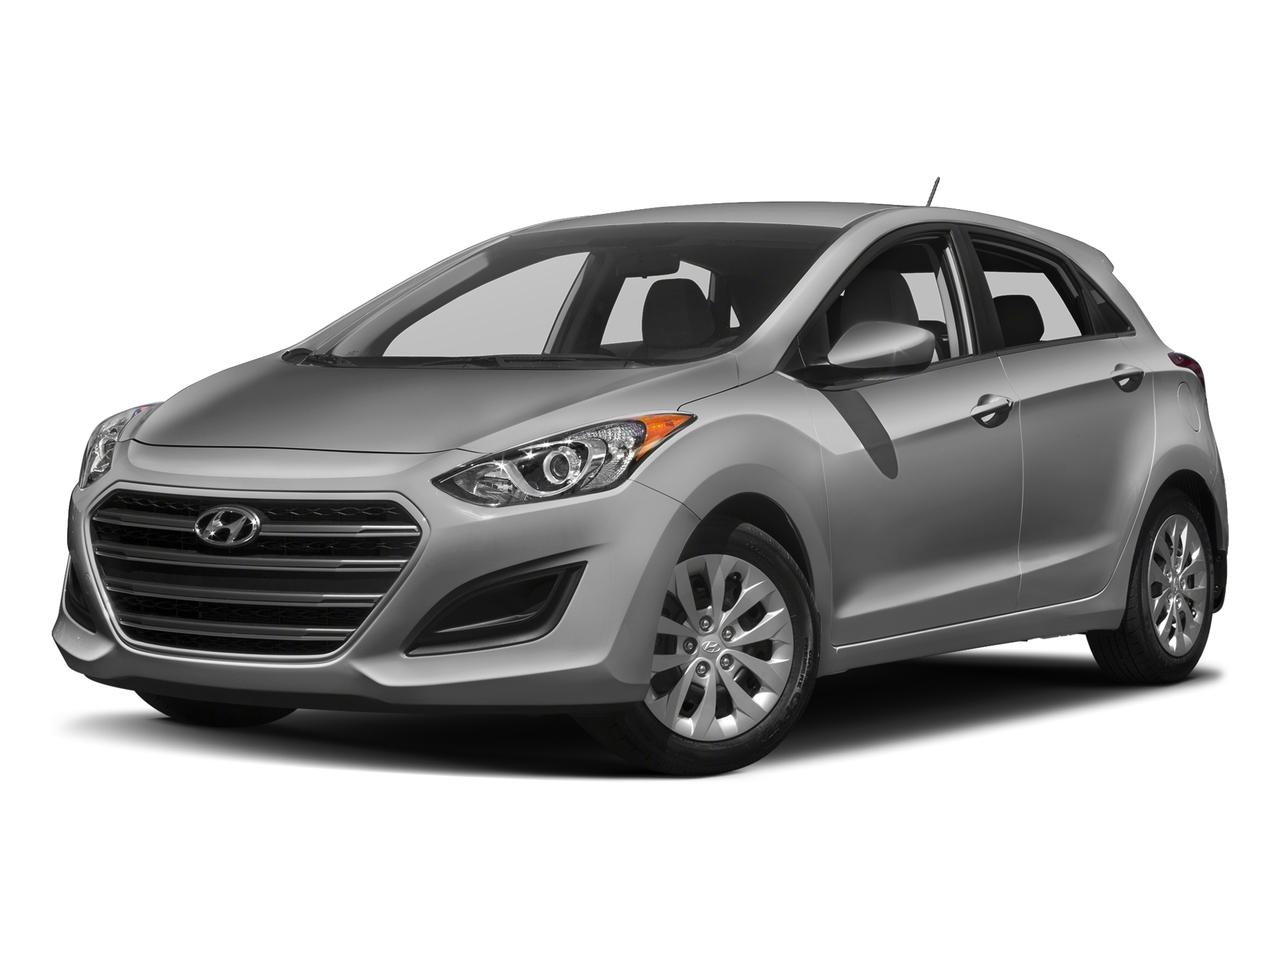 2017 Hyundai Elantra GT Vehicle Photo in Helena, MT 59601